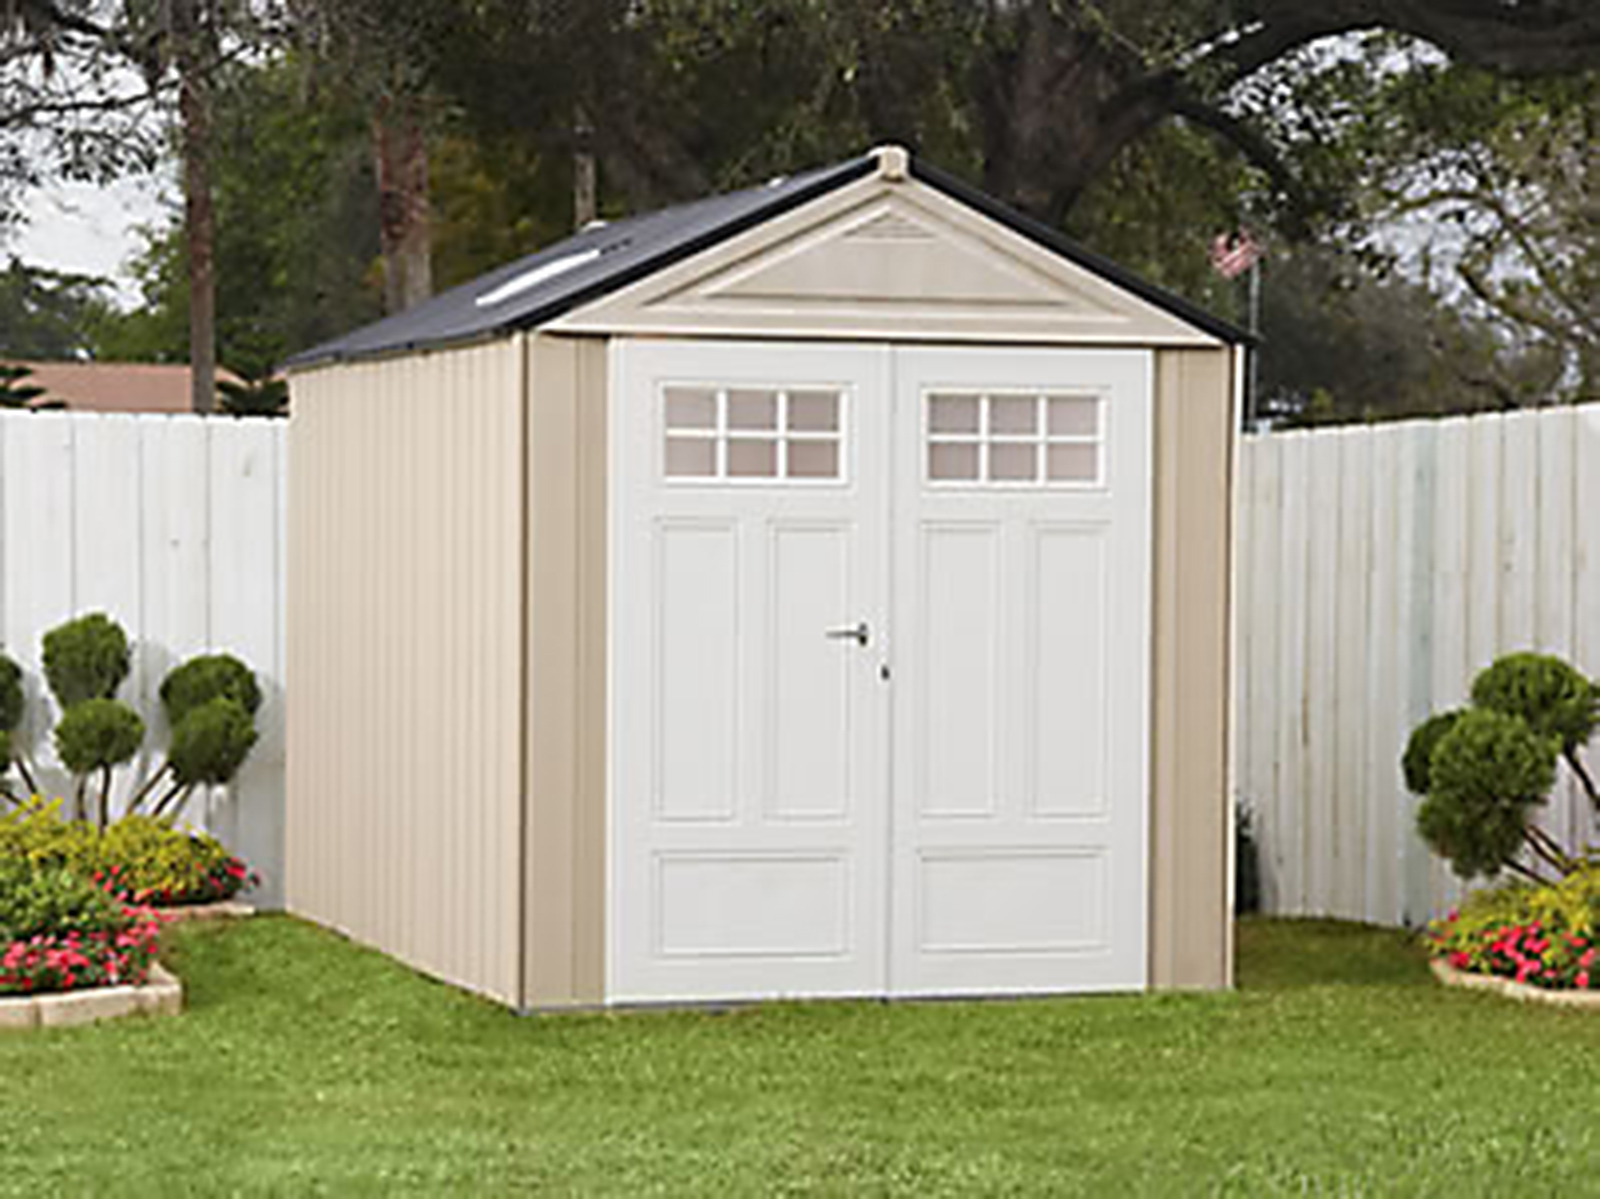 Rubbermaid® Outdoor Resin Storage Shed, 7' x 10'6""